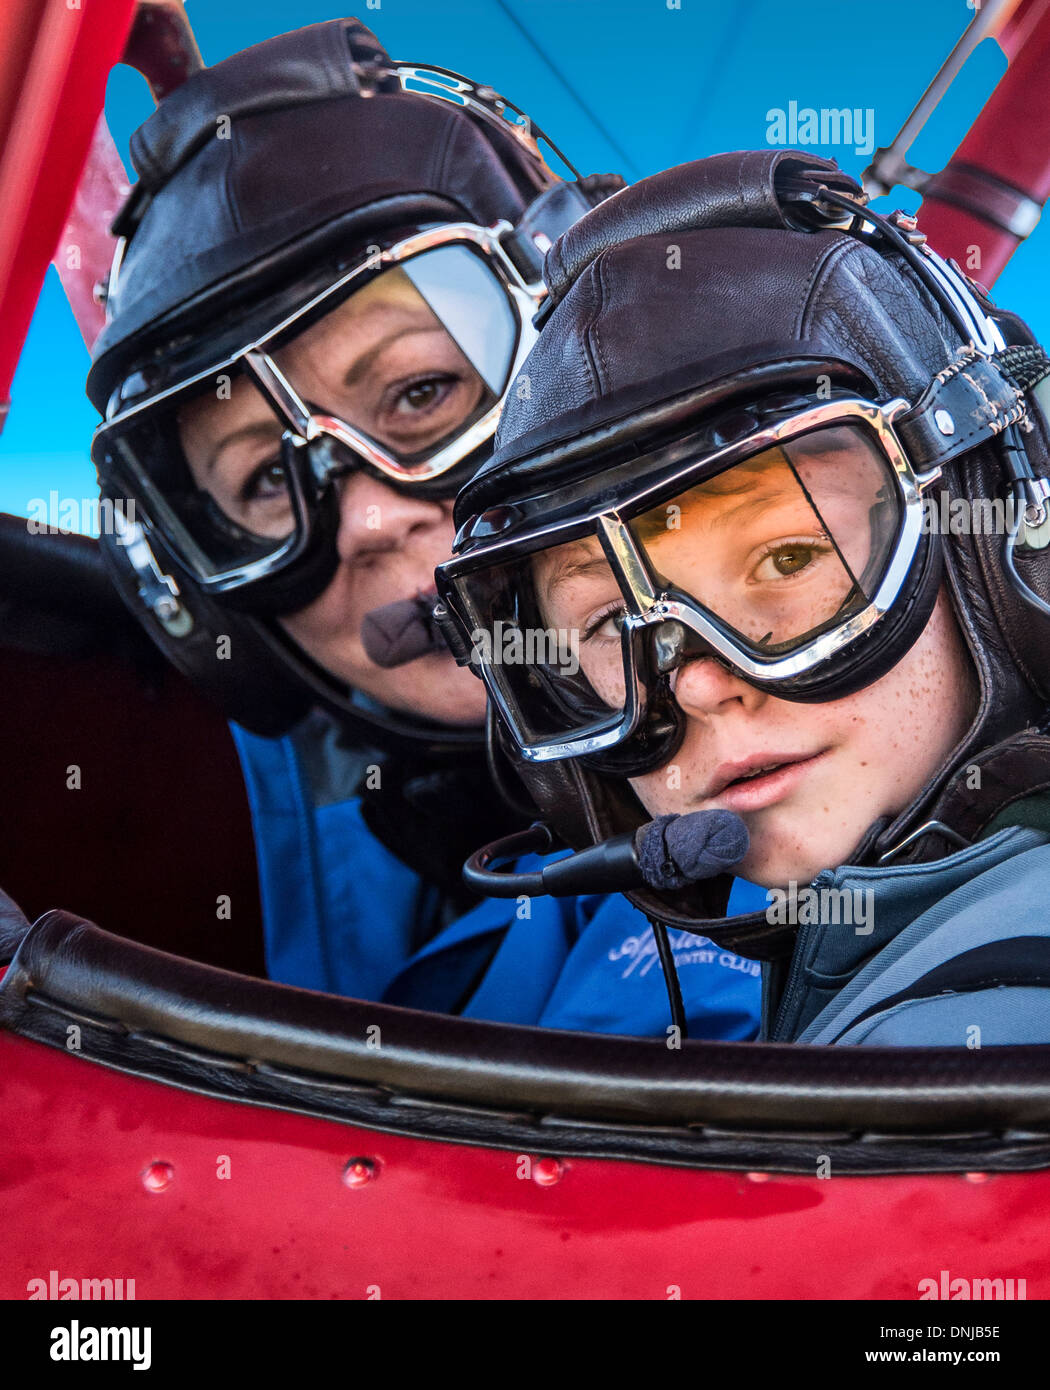 Mother and son ready for an exhilarating plane ride. - Stock Image